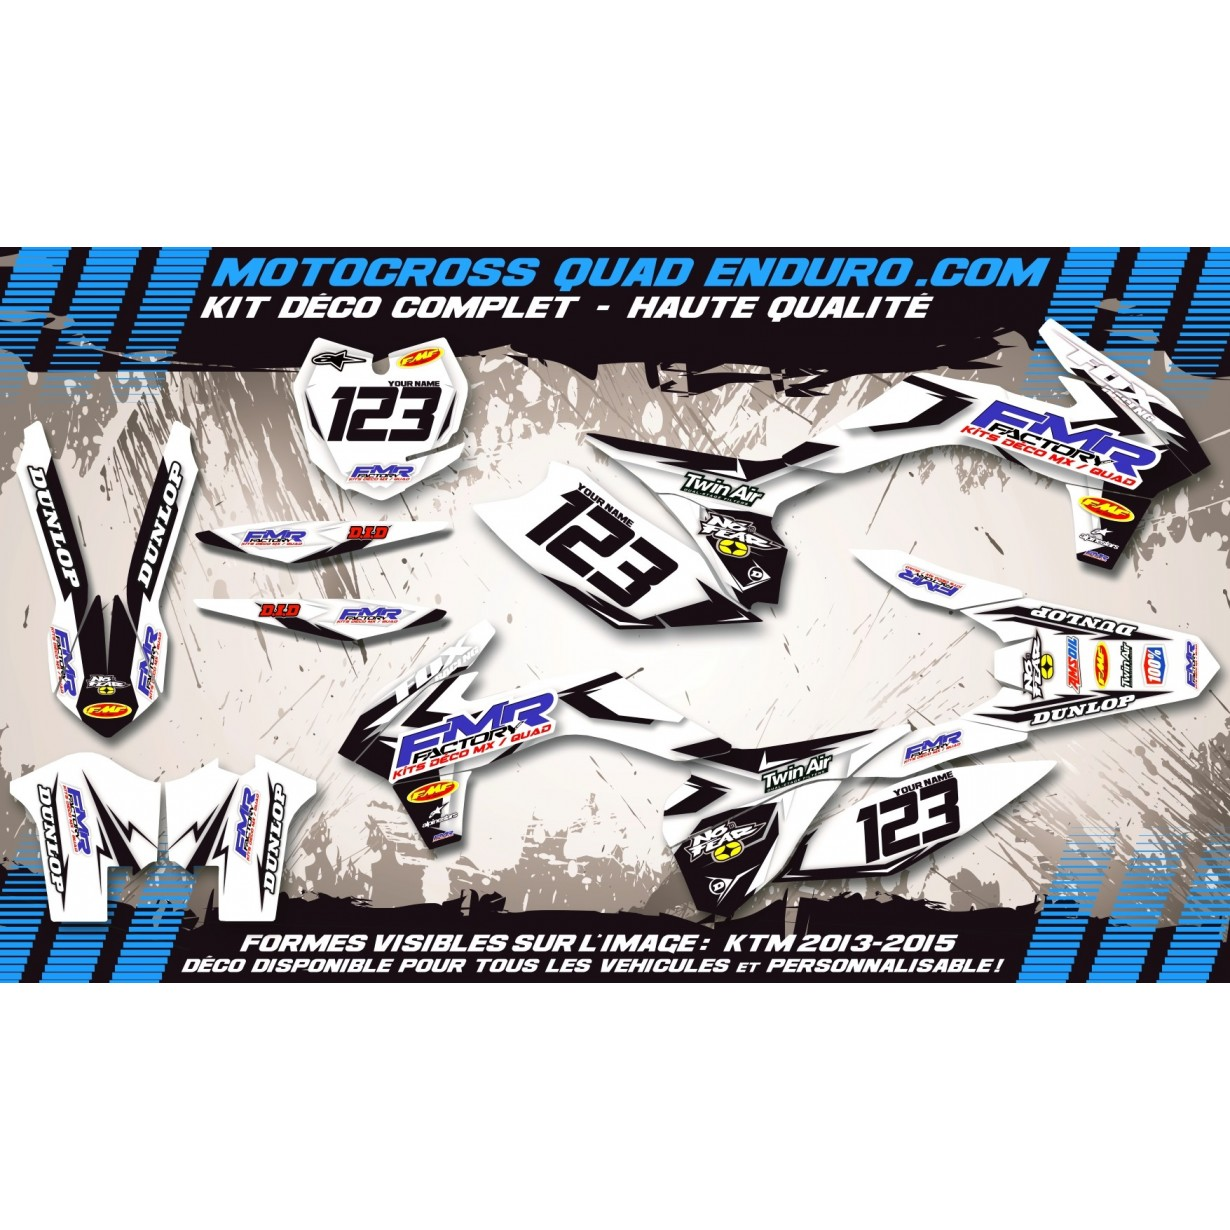 KIT DÉCO Perso 50 CRF 04-15 Fmr factory WT Edition MA13WT